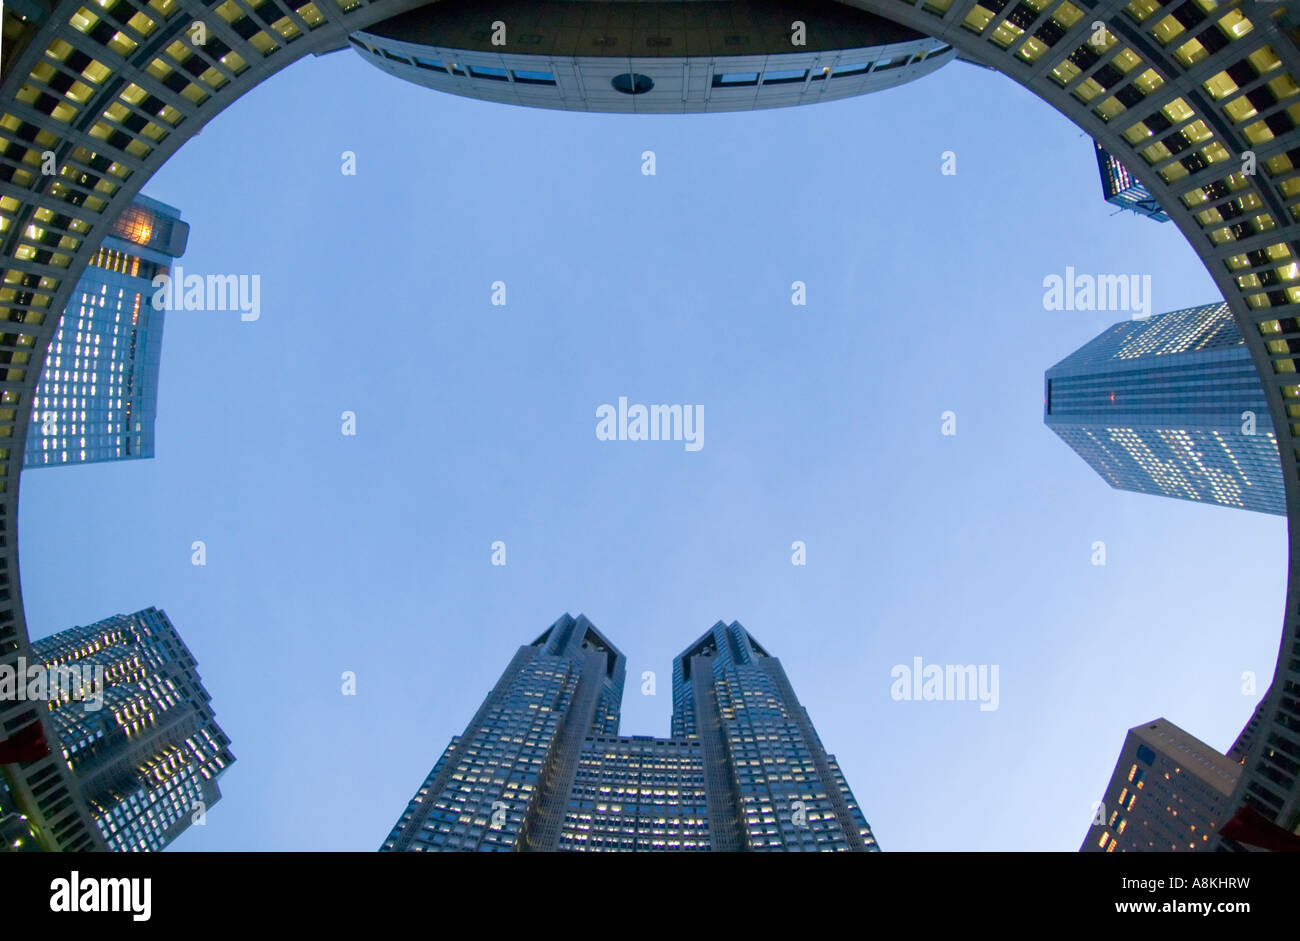 Wide angle view of buildings at Metropolitan City Hall in Shinjuku Tokyo Japan Stock Photo